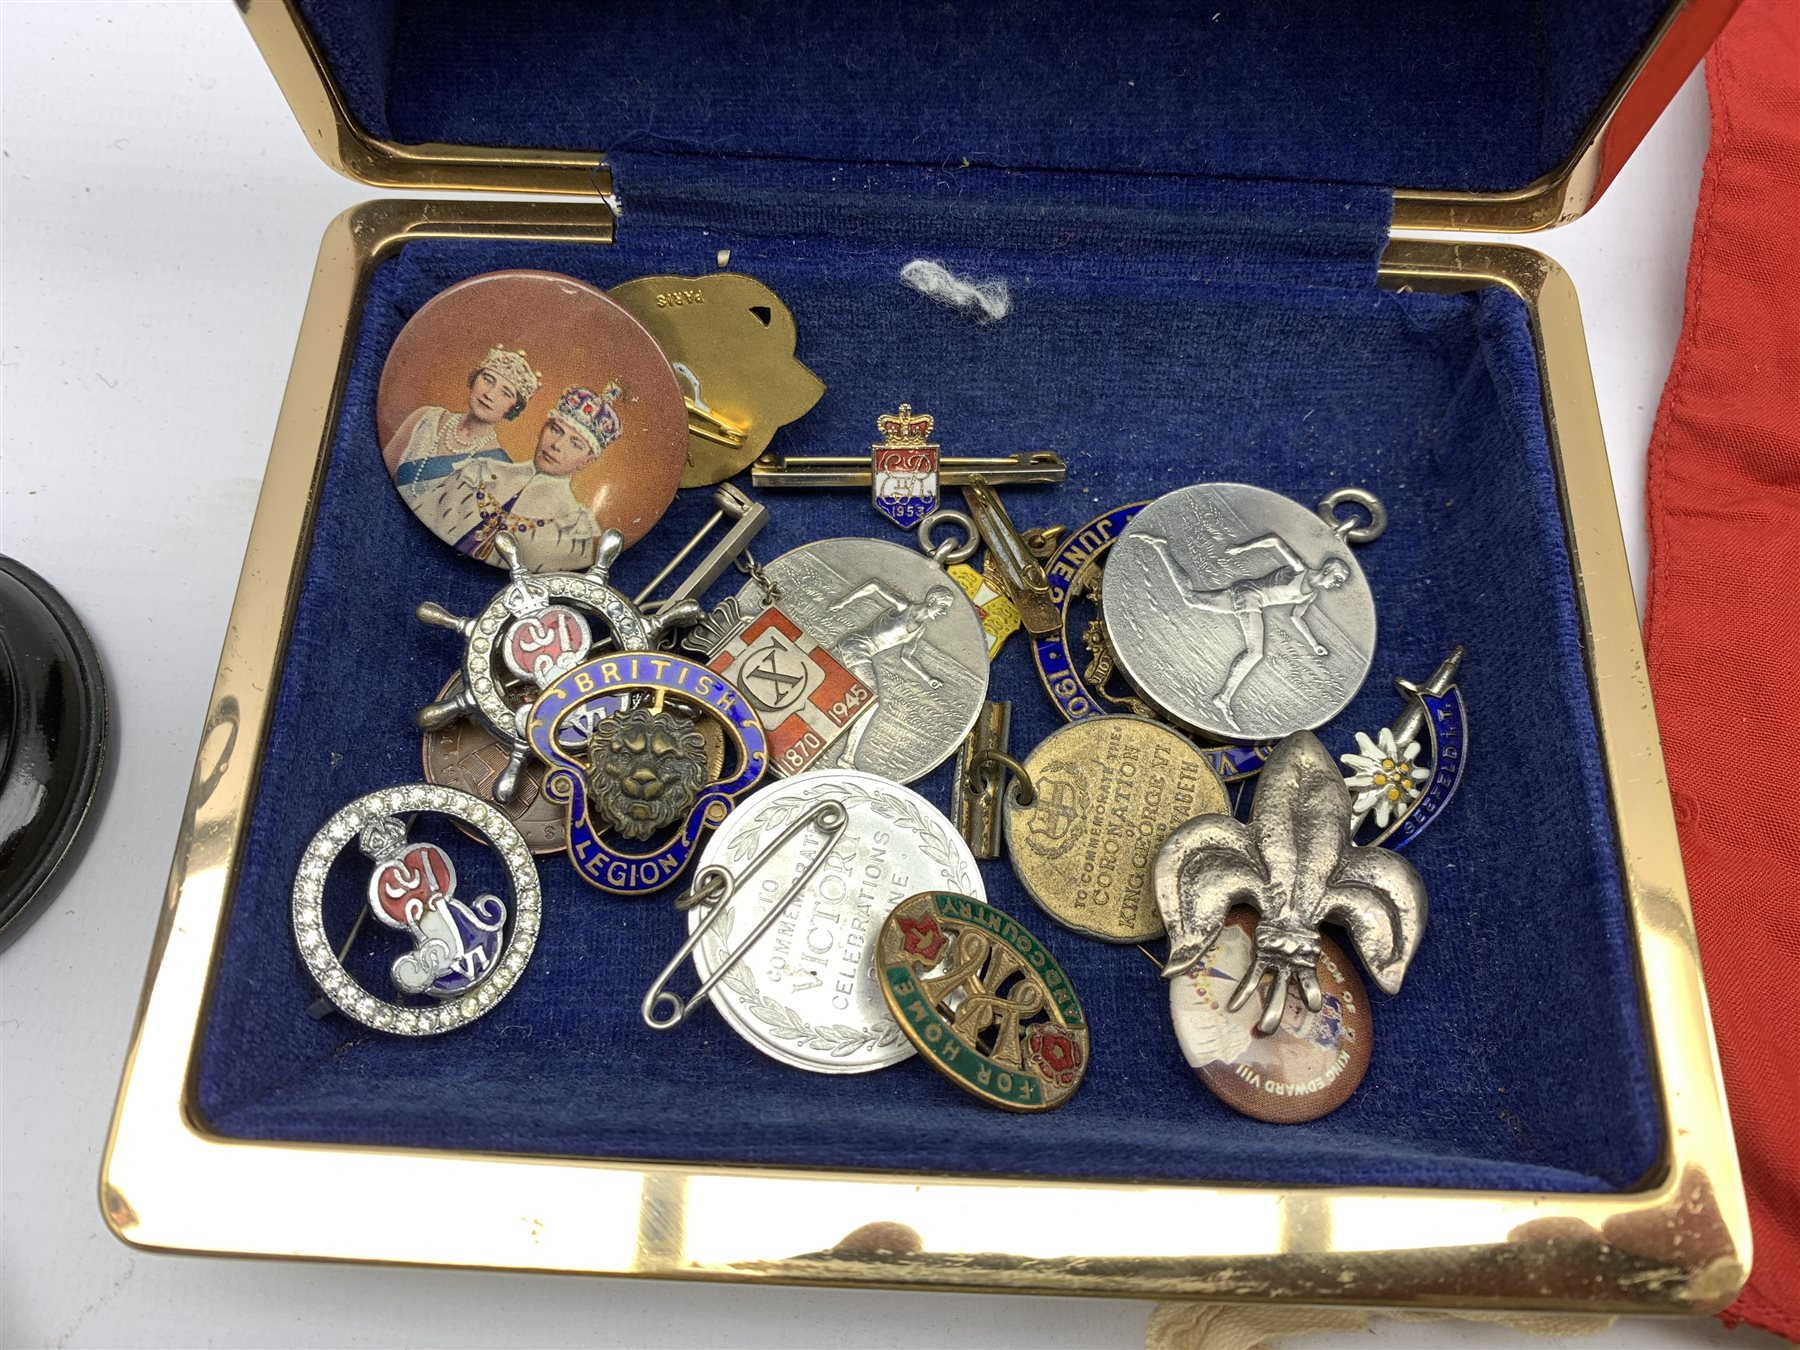 Part set of six gilt metal buttons by Firmin & Sons with lion and shell crest, boxed, collection of - Image 4 of 9